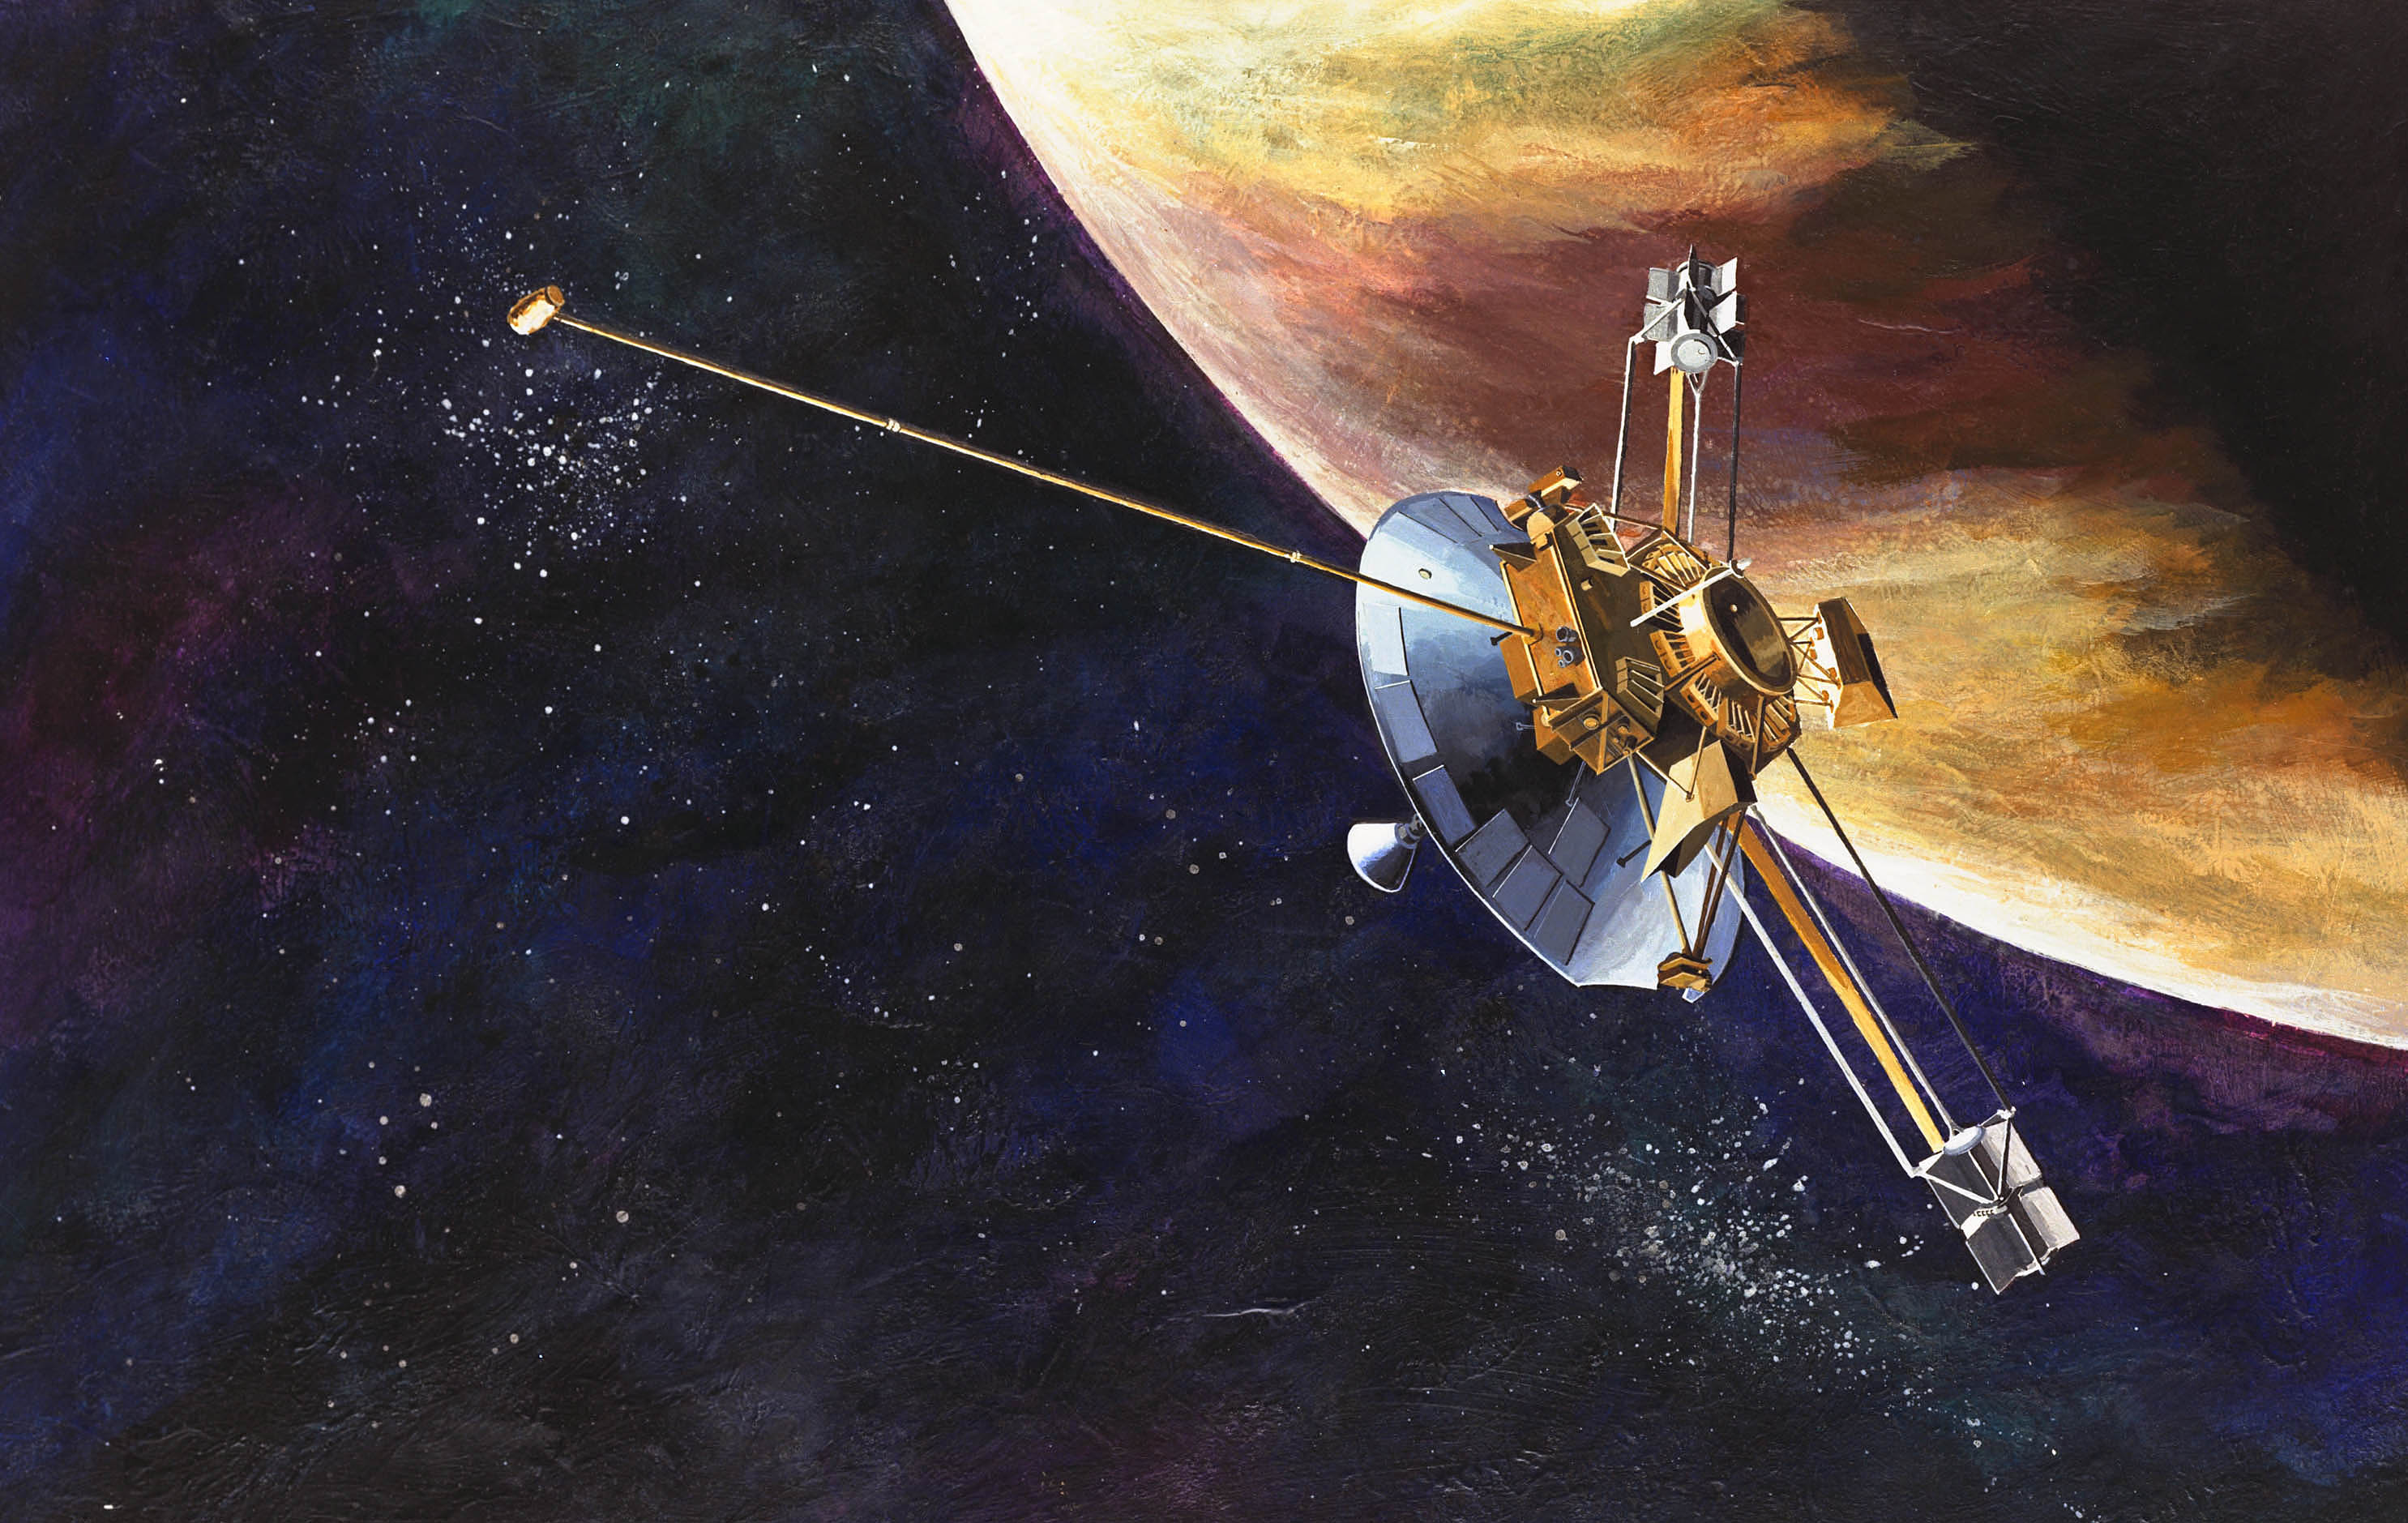 space probes meaning - HD1920×1214